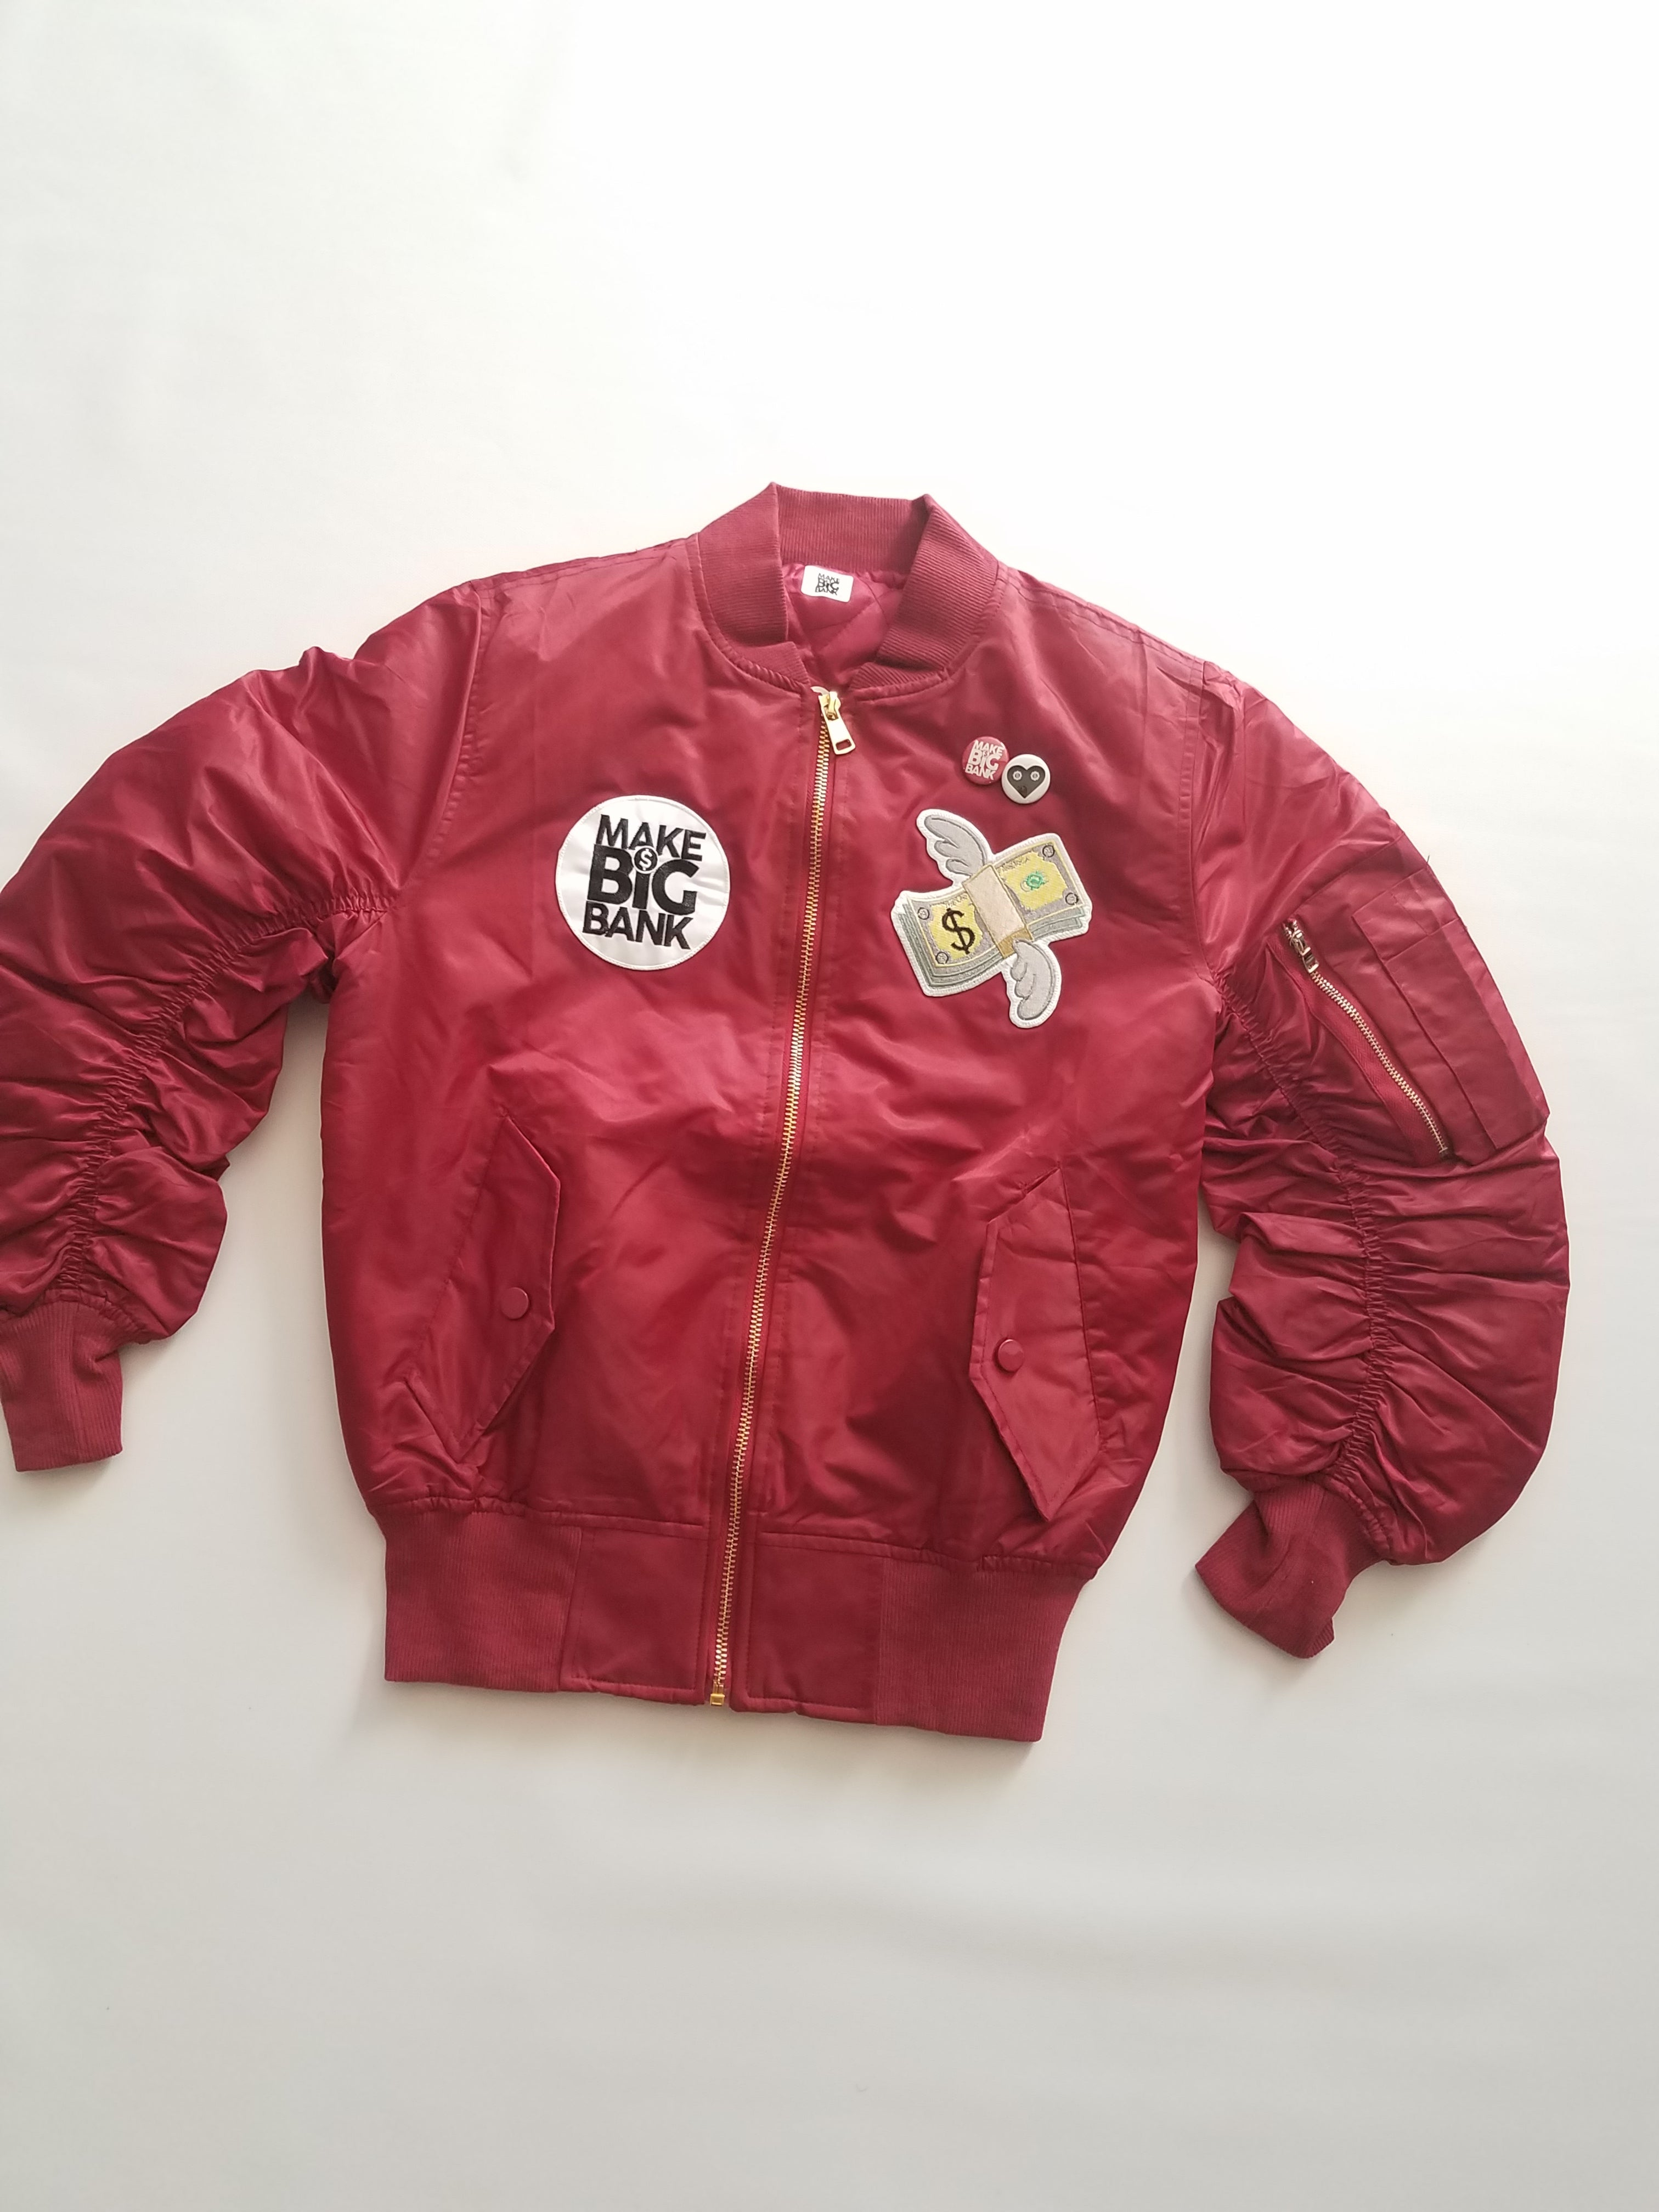 Womens Money Wing Bomber Jacket - Make Big Bank